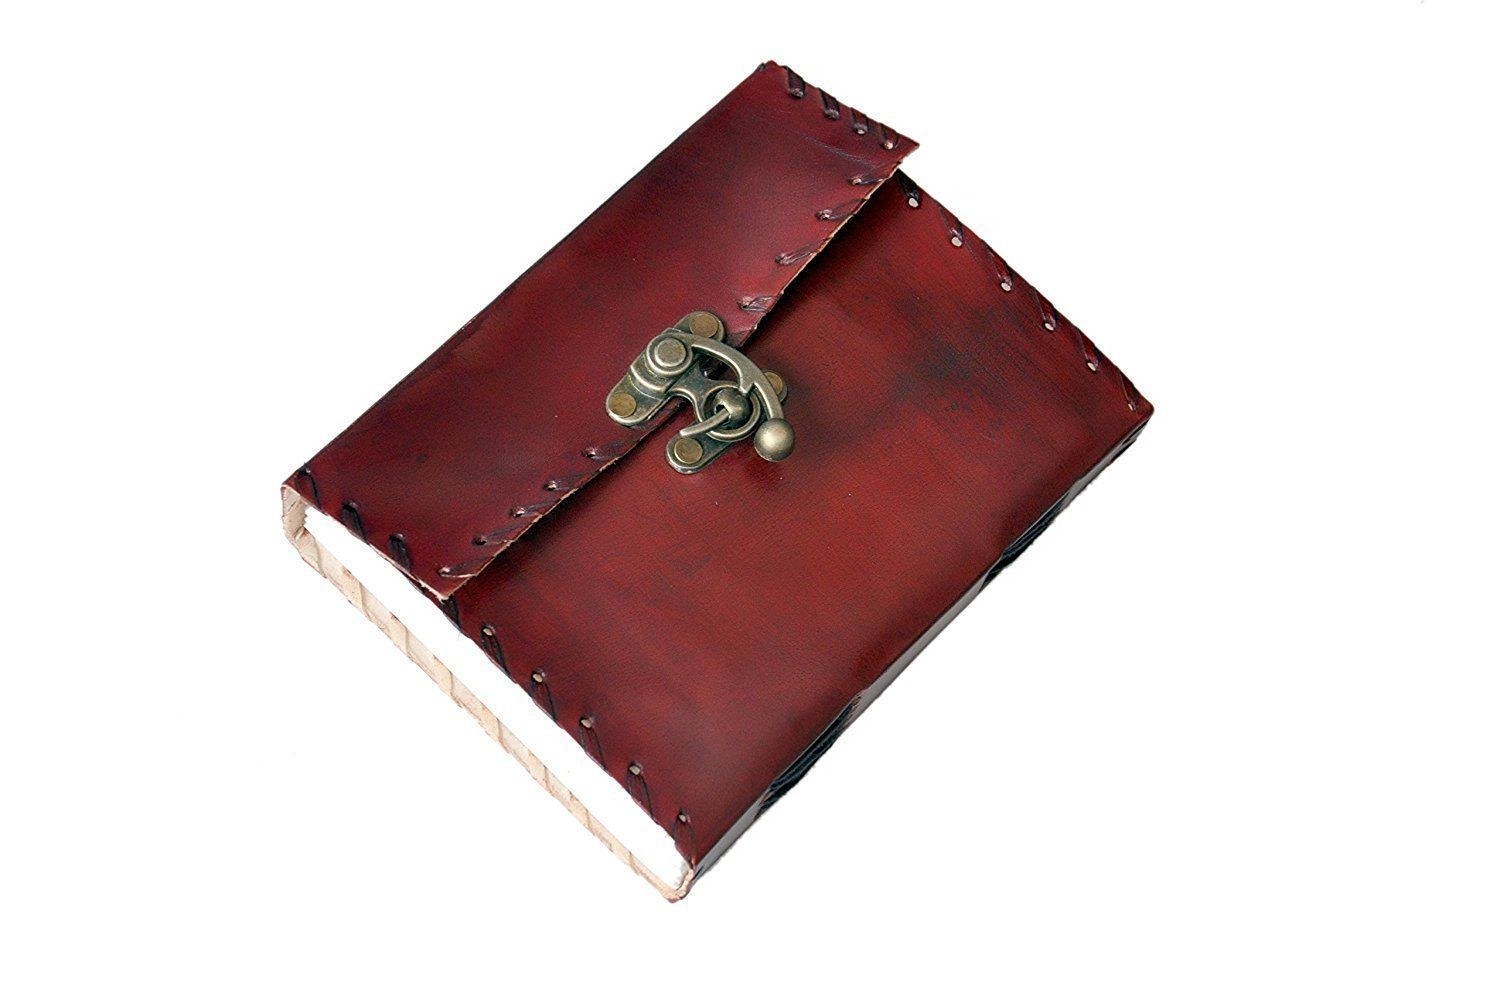 Diary - Miniature Hand Pocket Size Pure Leather Journal Diary With LOCK - Deal Of The Day